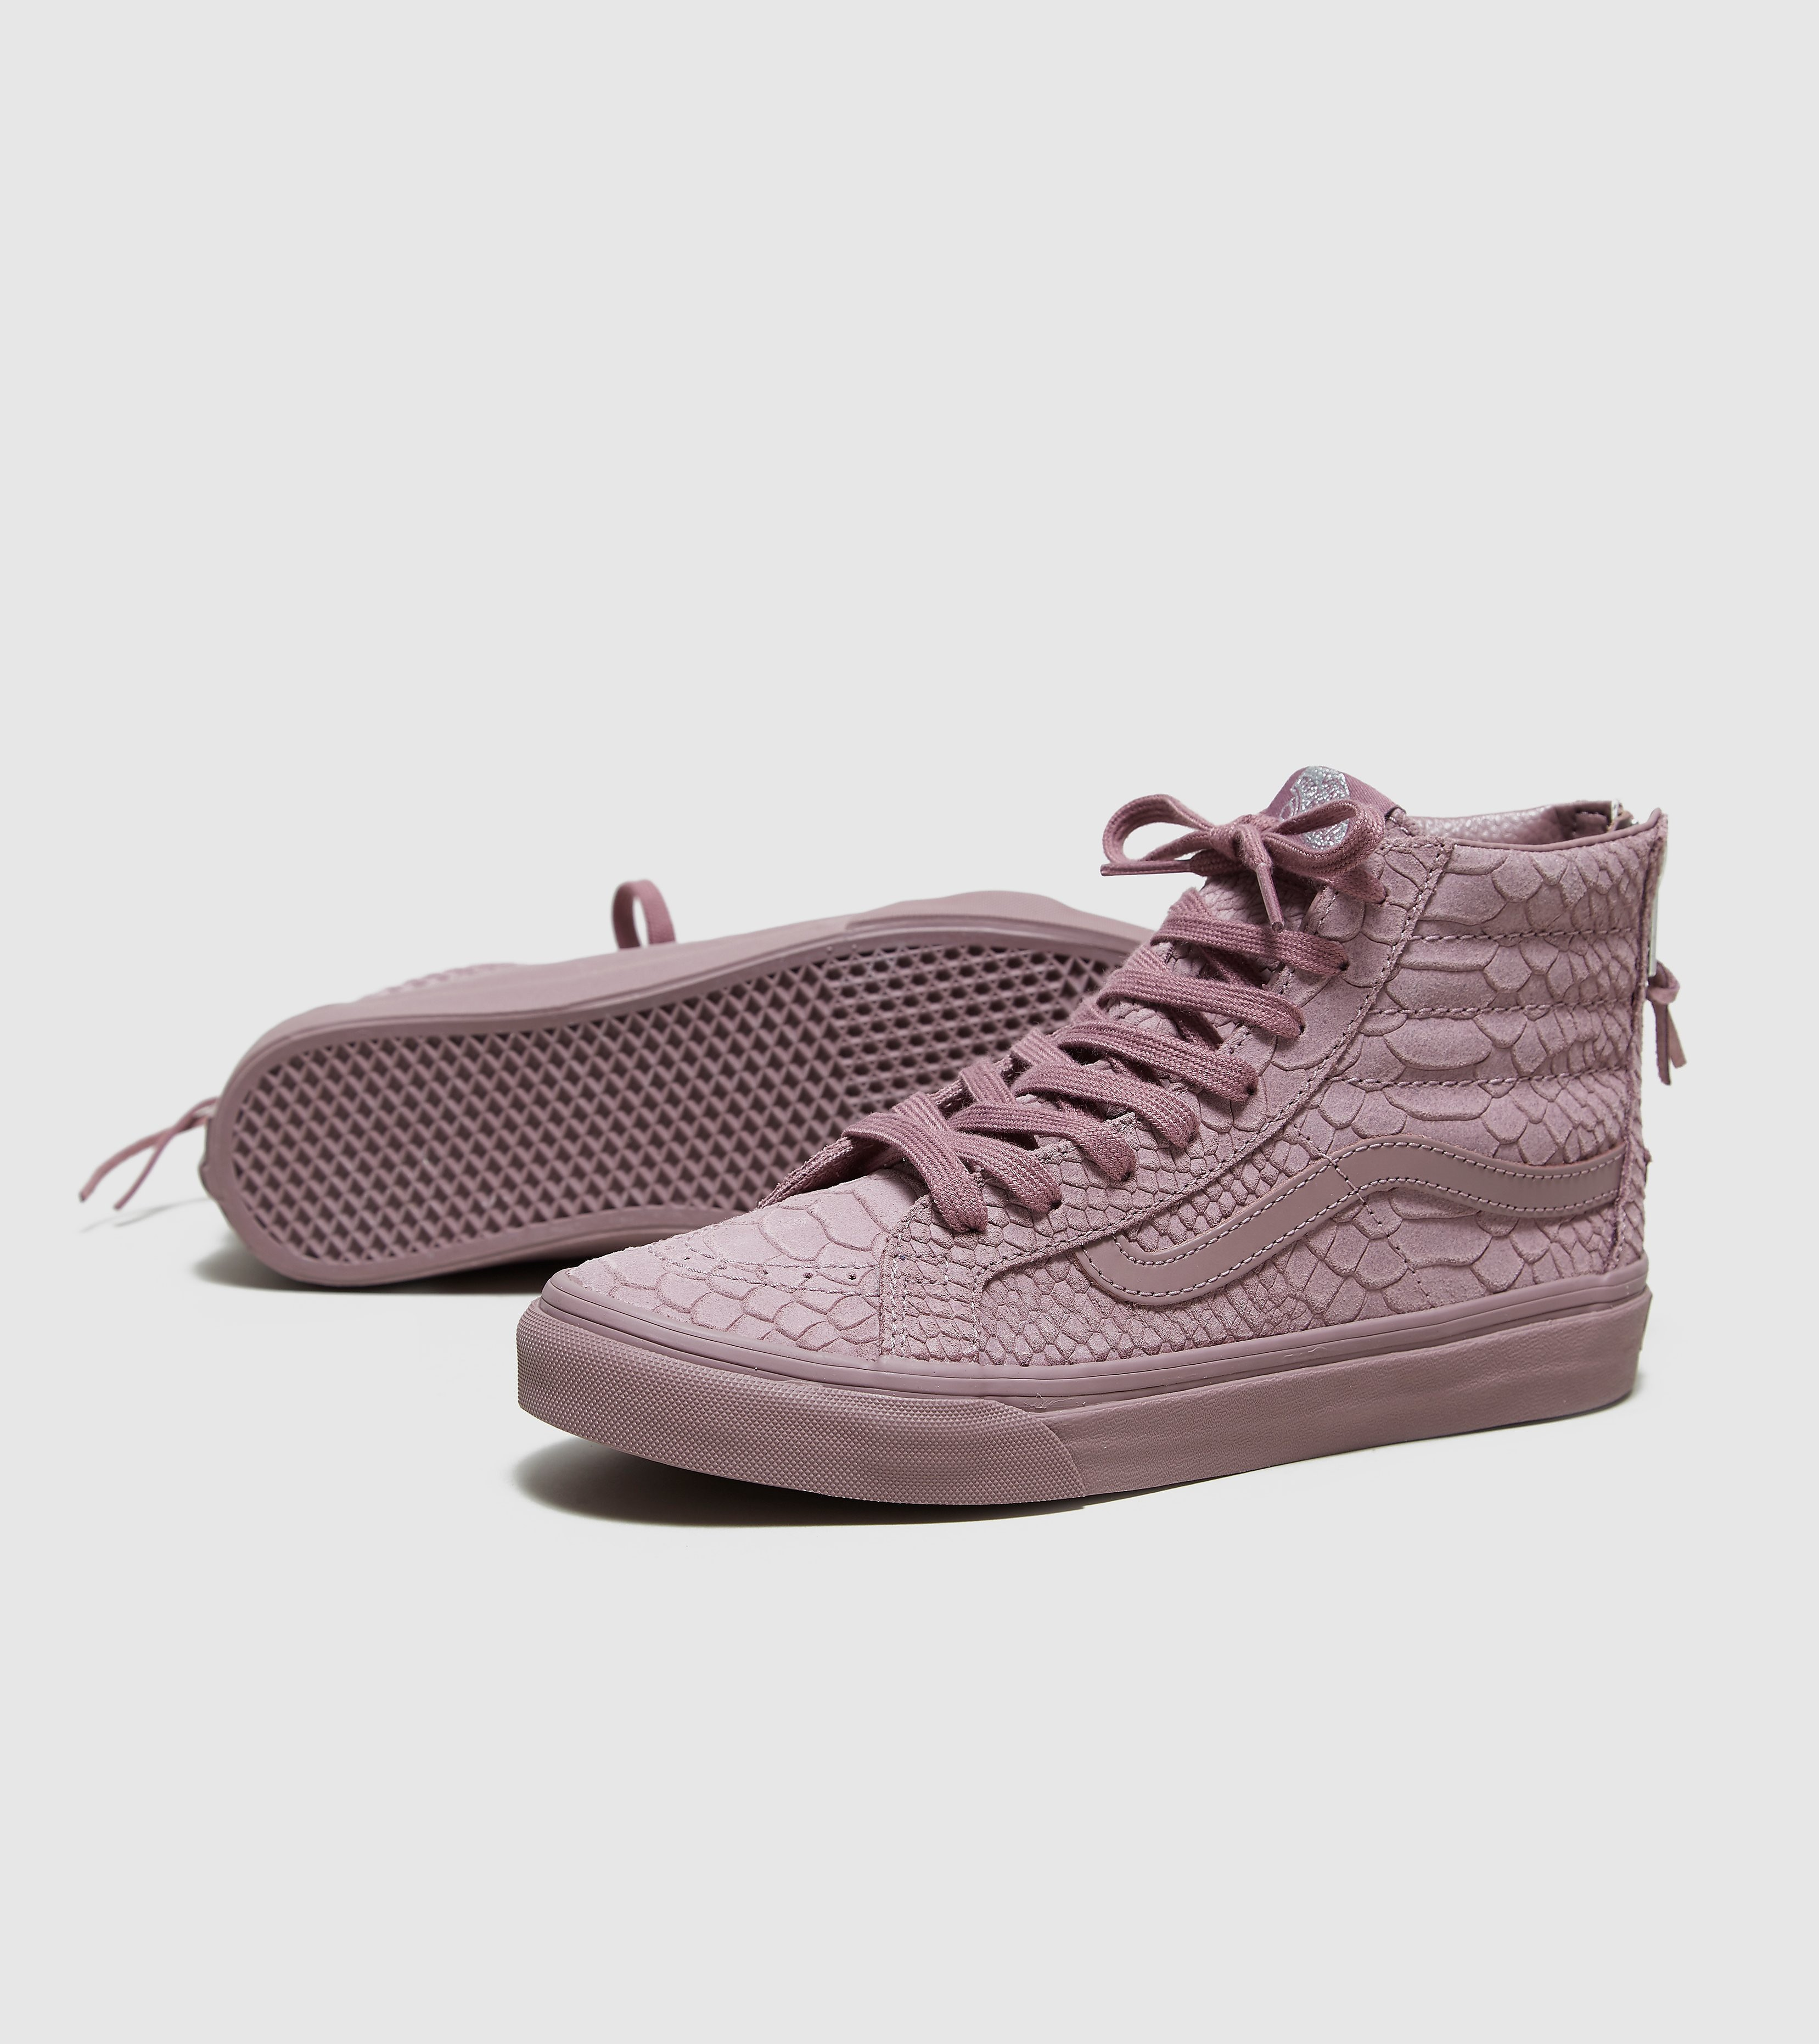 Vans Sk8-Hi Snakeskin Leather Zip Women's